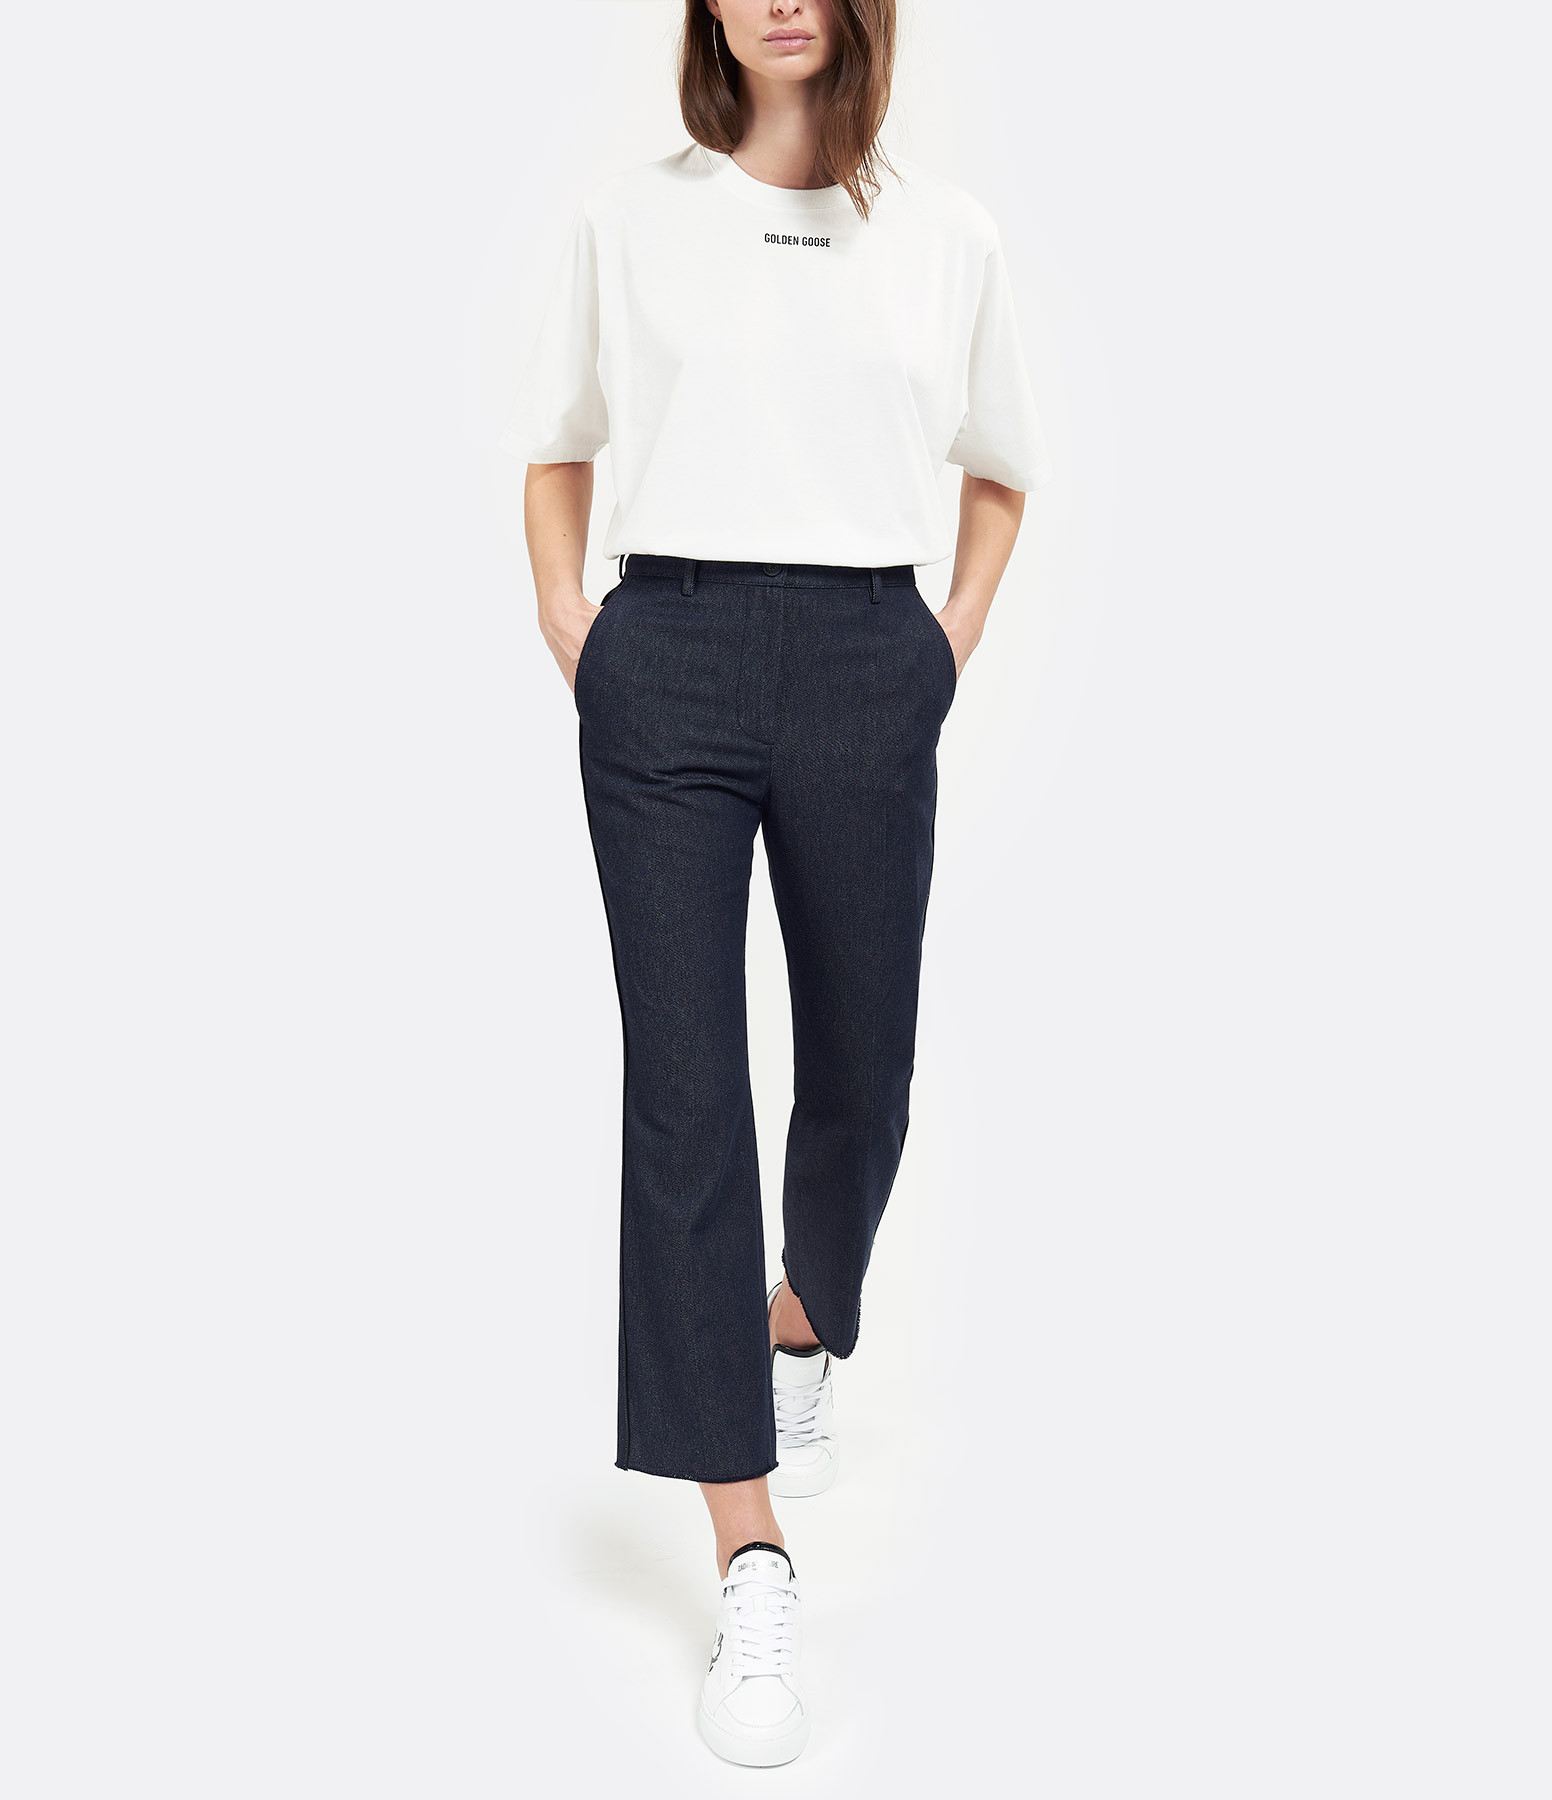 GOLDEN GOOSE - Pantalon Crop Marta Denim Bleu